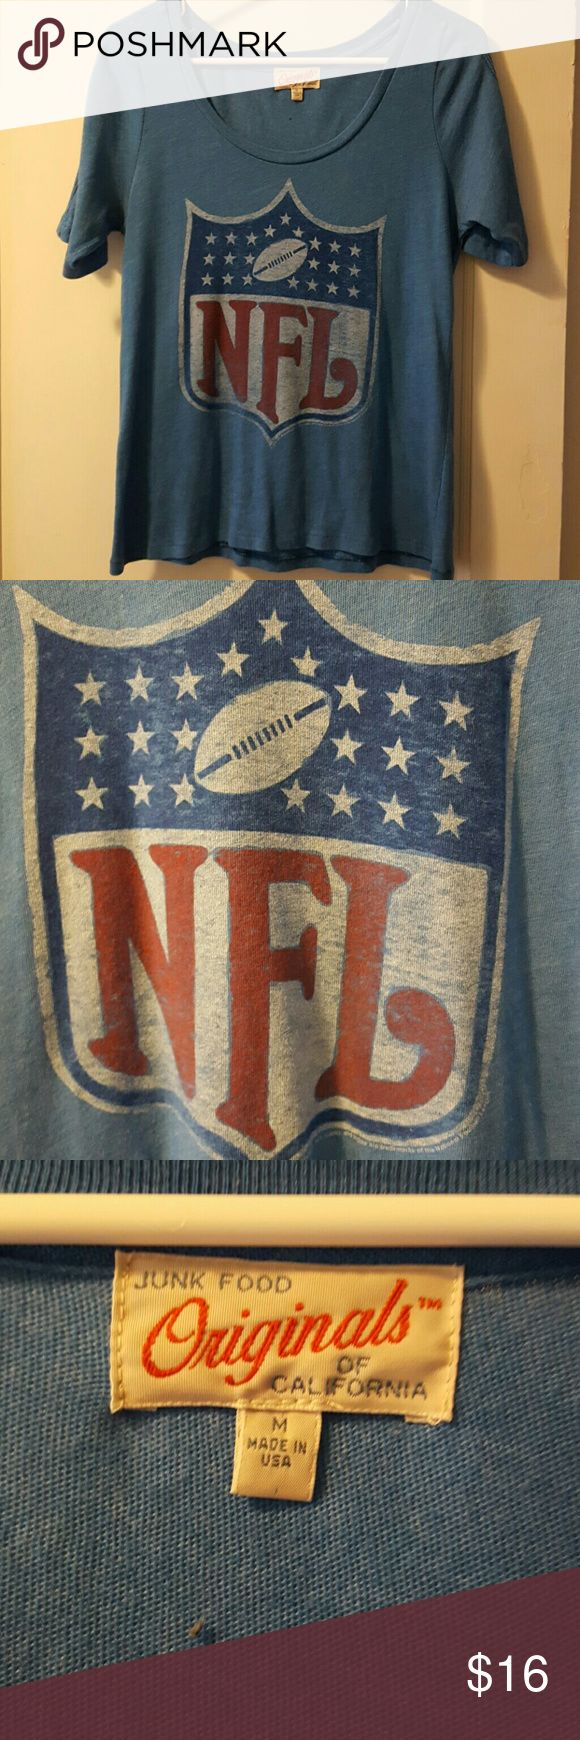 Ladies NFL t-shirt Just in time for game day! Short-sleeve, scoop neck, cute ladies NFL t-shirt. Light Blue. 50 percent cotton, 50 percent polyester. Never been worn! Junk Food Tops Tees - Short Sleeve